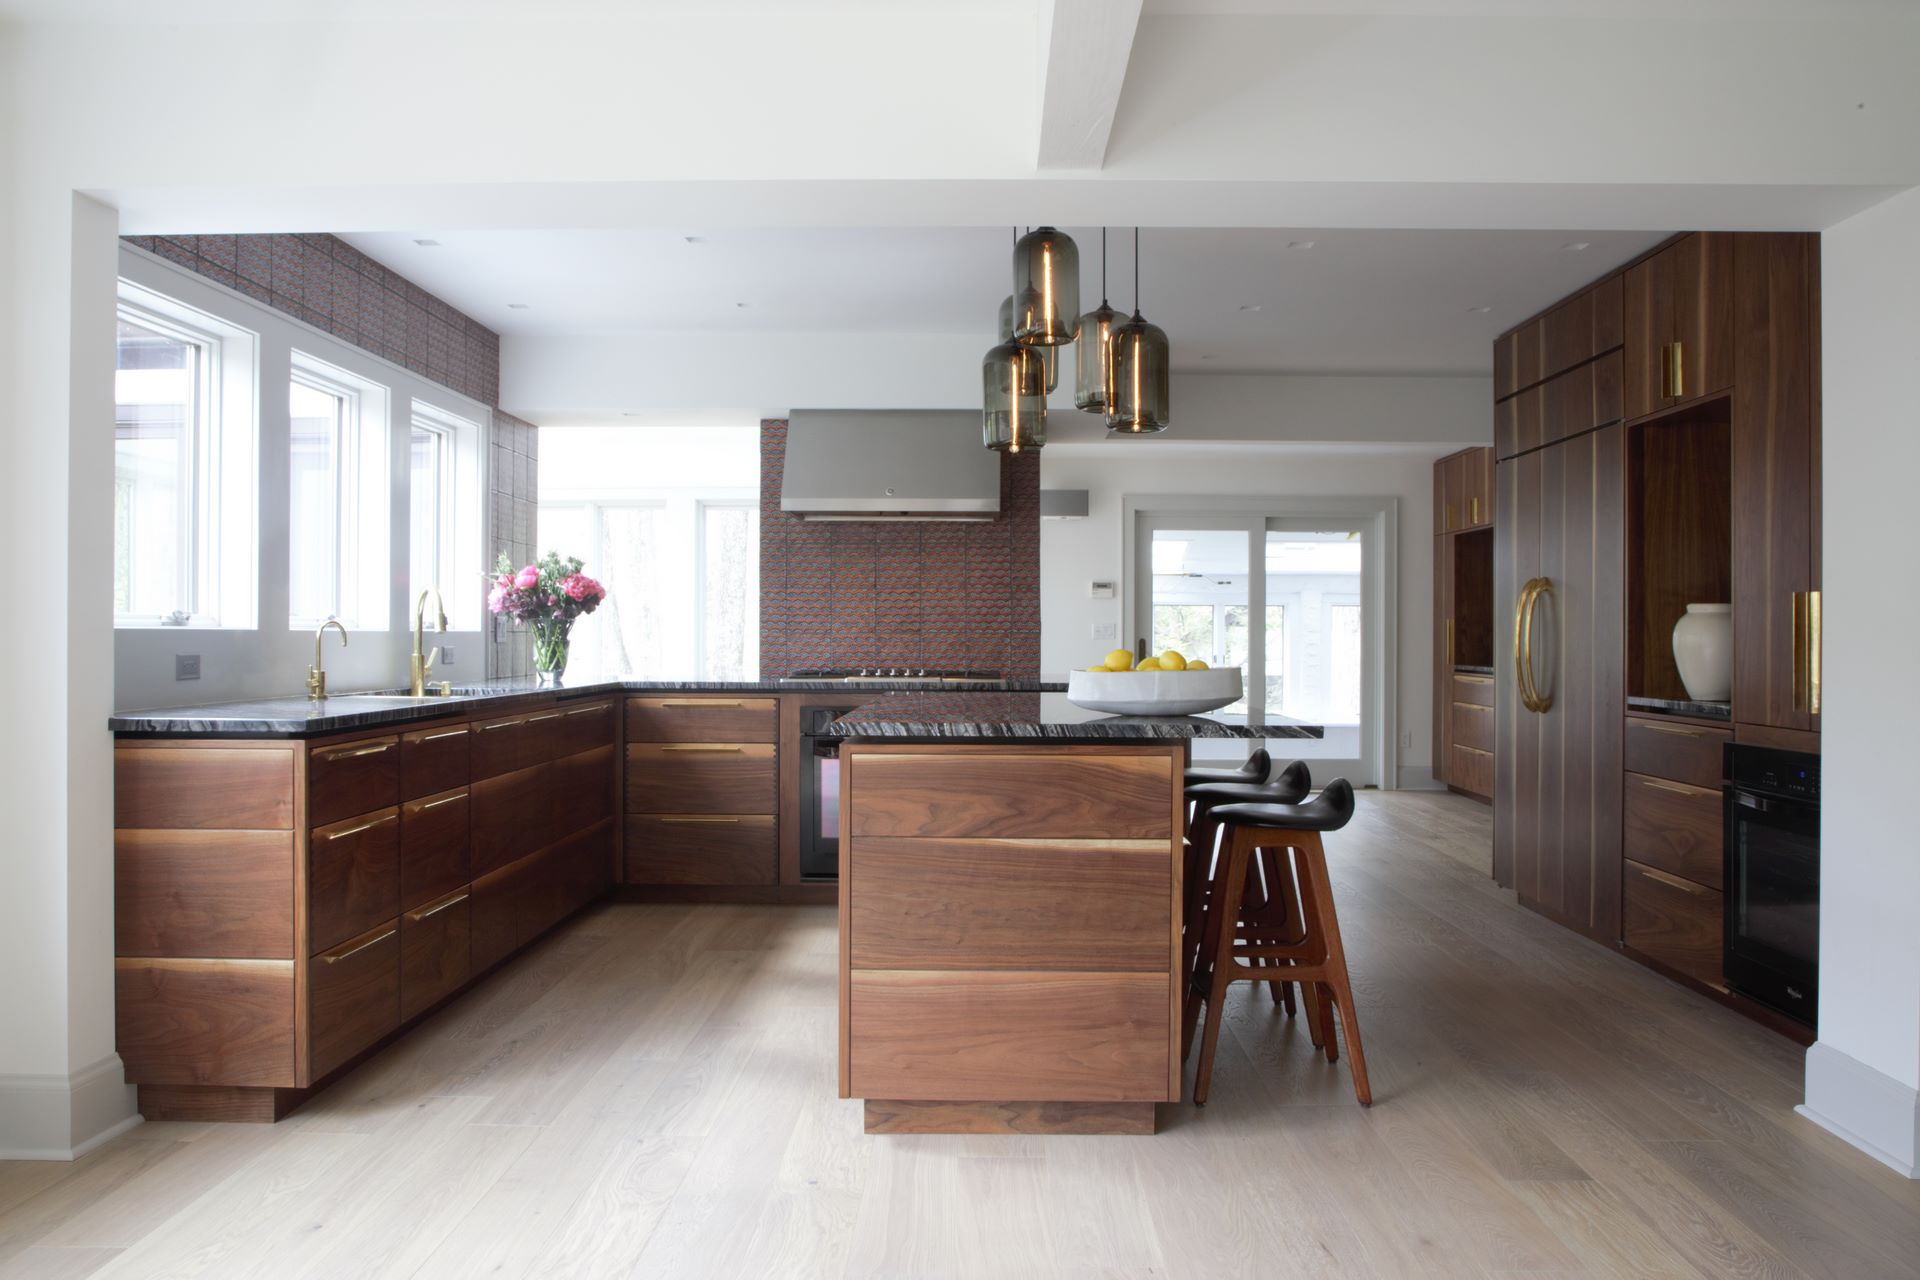 kitchens-cabinets-10